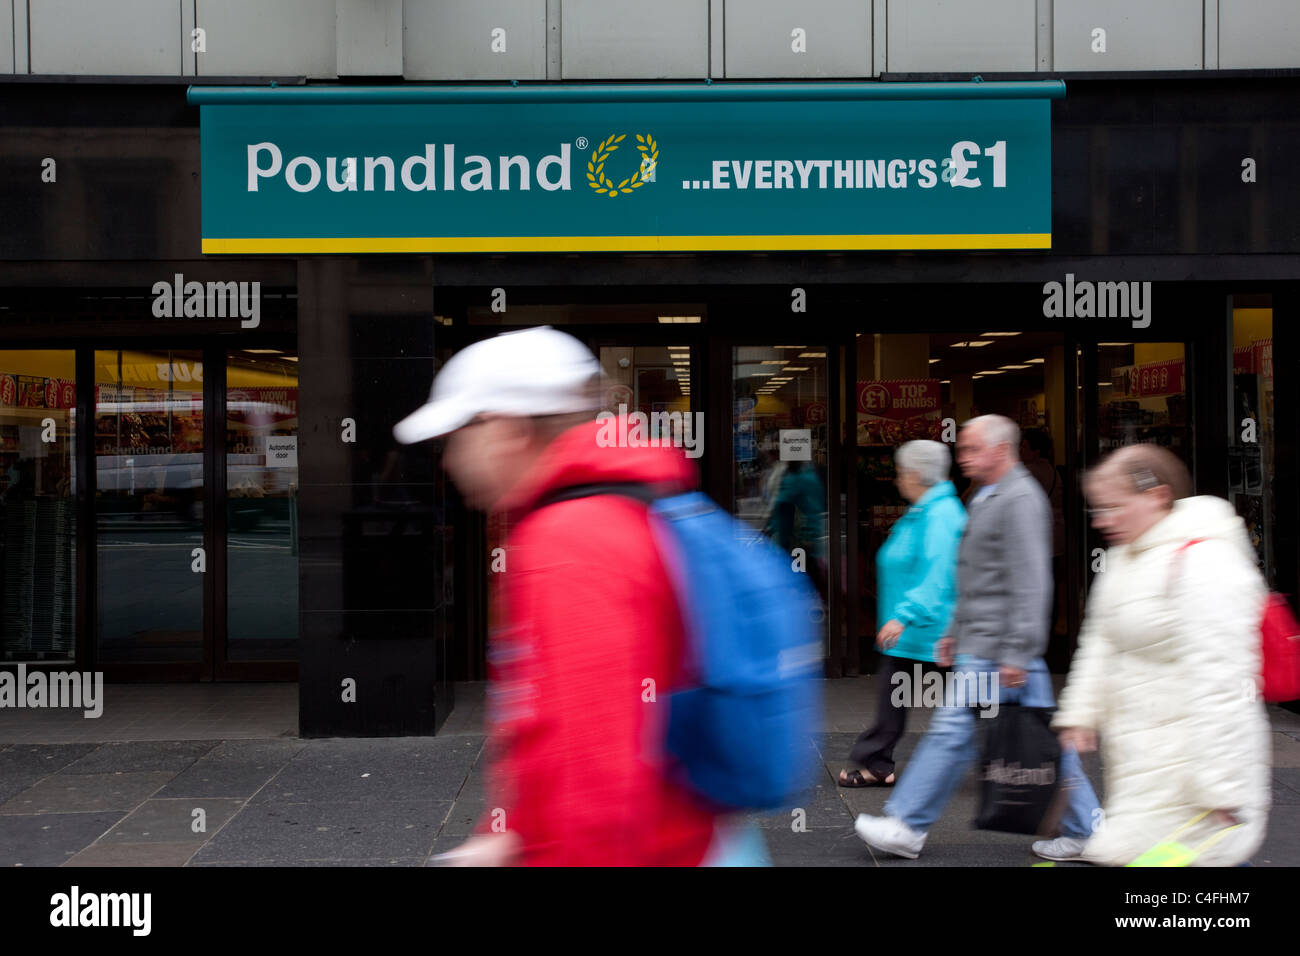 Poundland British based variety store chain which sells every item in its stores for £1.Photo:Jeff Gilbert - Stock Image